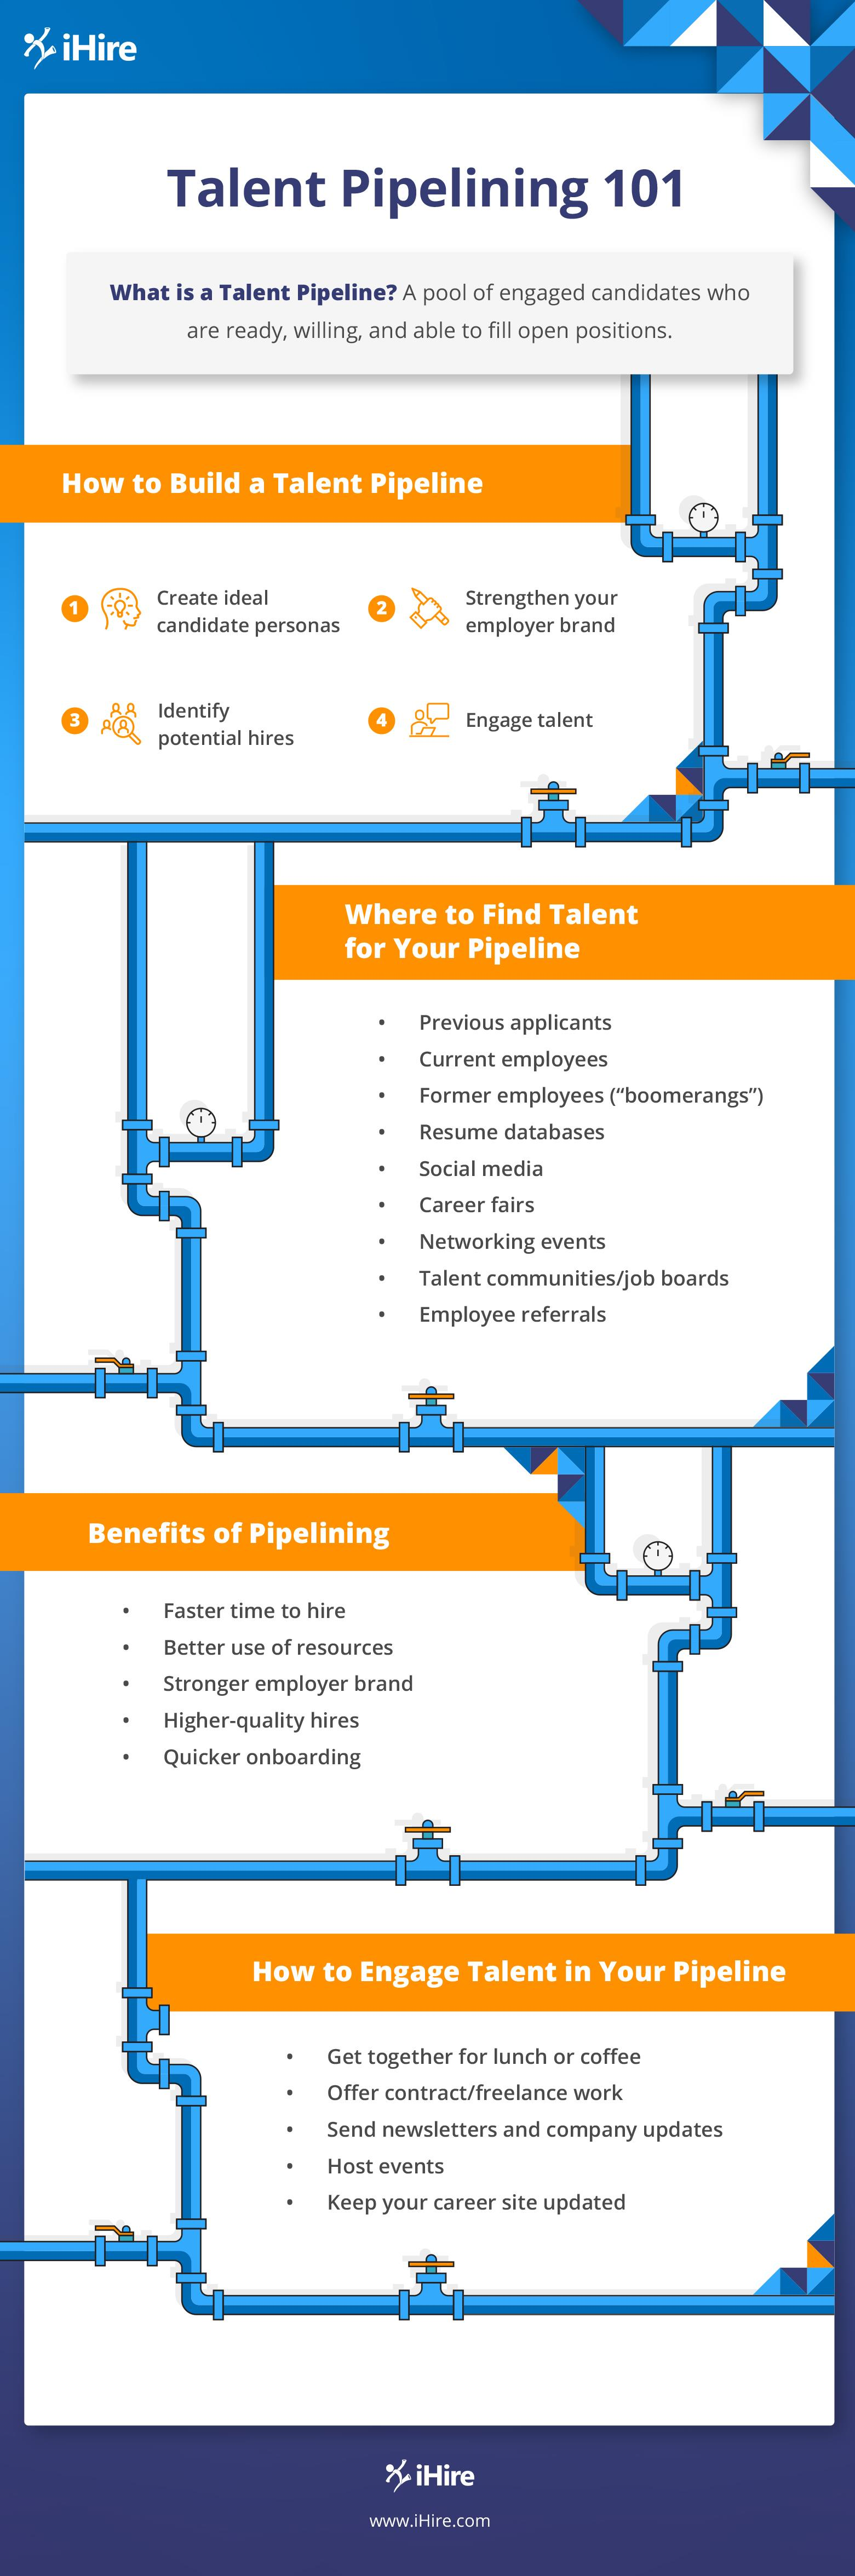 Talent Pipelining Infographic